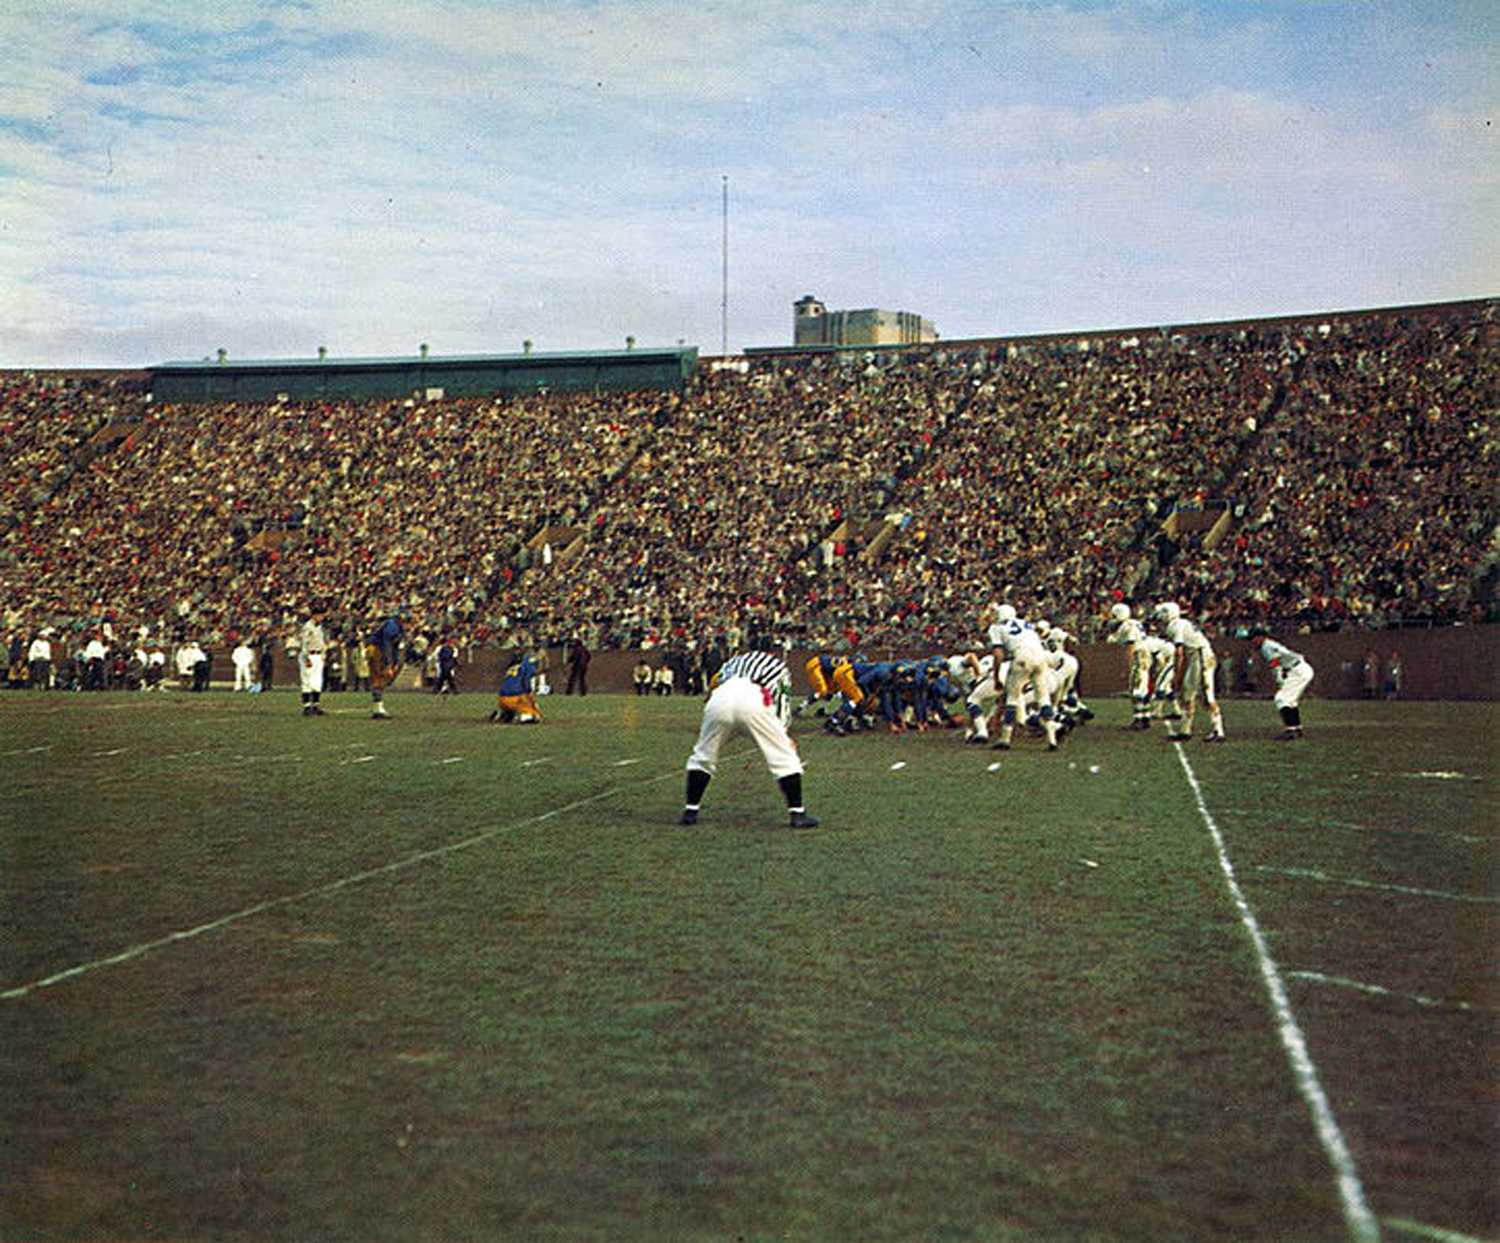 The Pitt and Penn State football teams face off in Pitt Stadium on November 27, 1958. (Image via Wikimedia Commons)